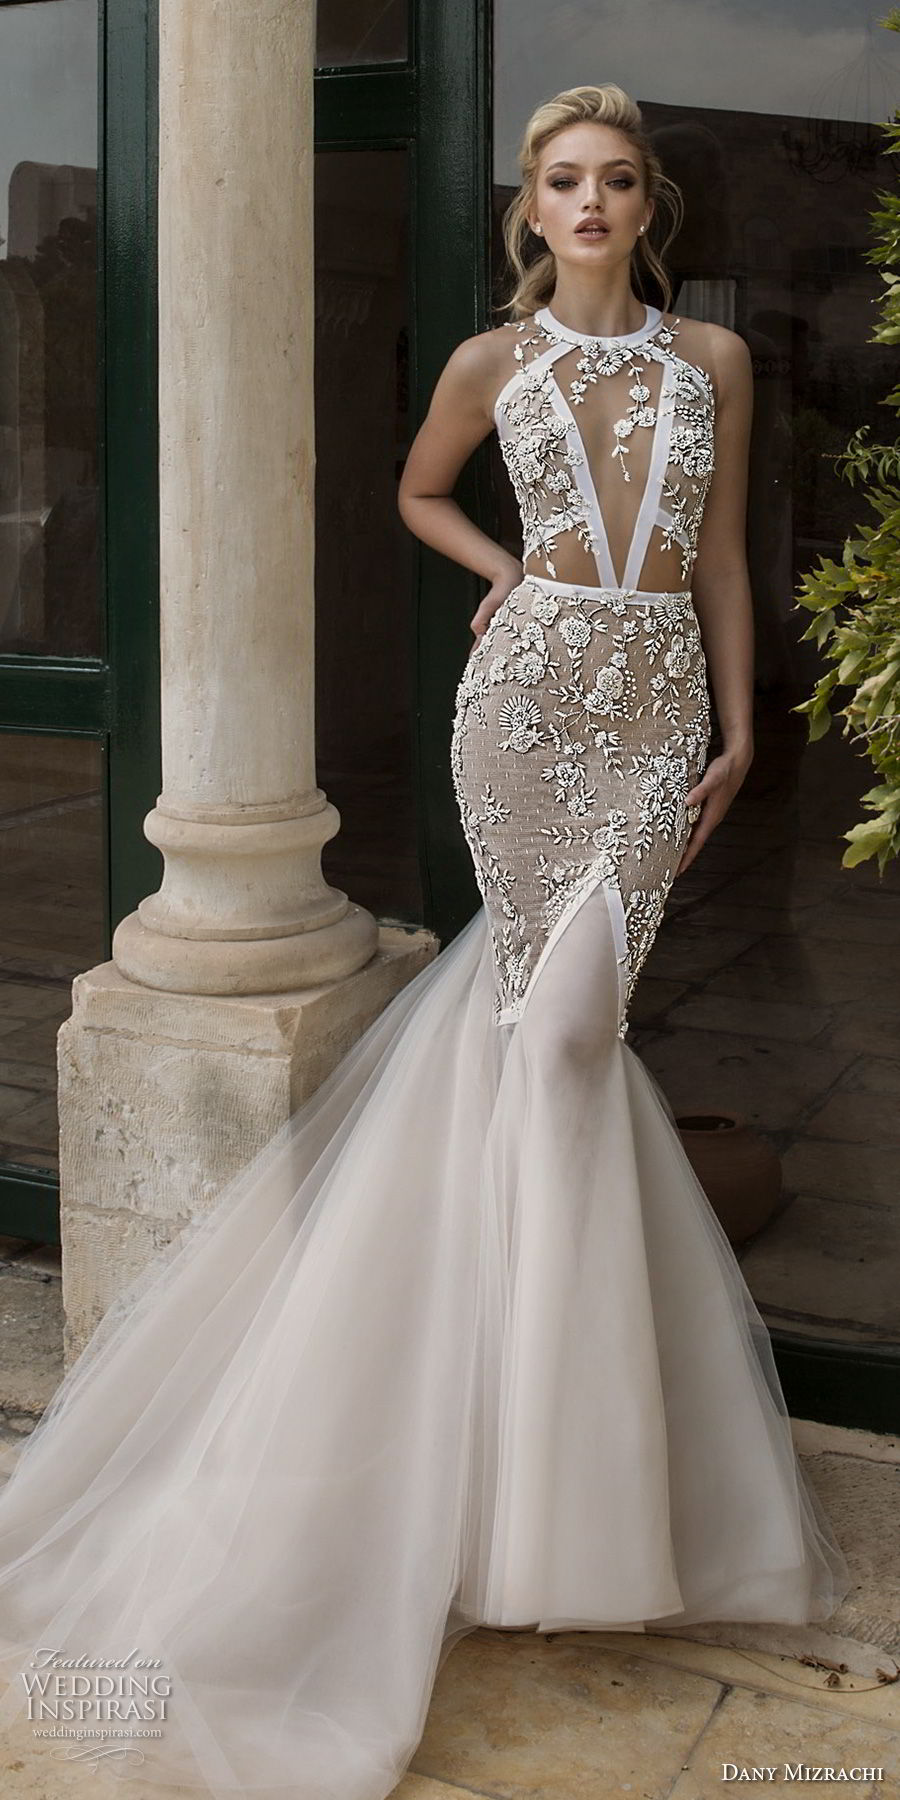 dany mizrachi spring 2018 bridal sleeveless halter jewel neck keyhole neckline heavily embellished bodice elegant mermaid wedding dress keyhole back chapel train (19) mv